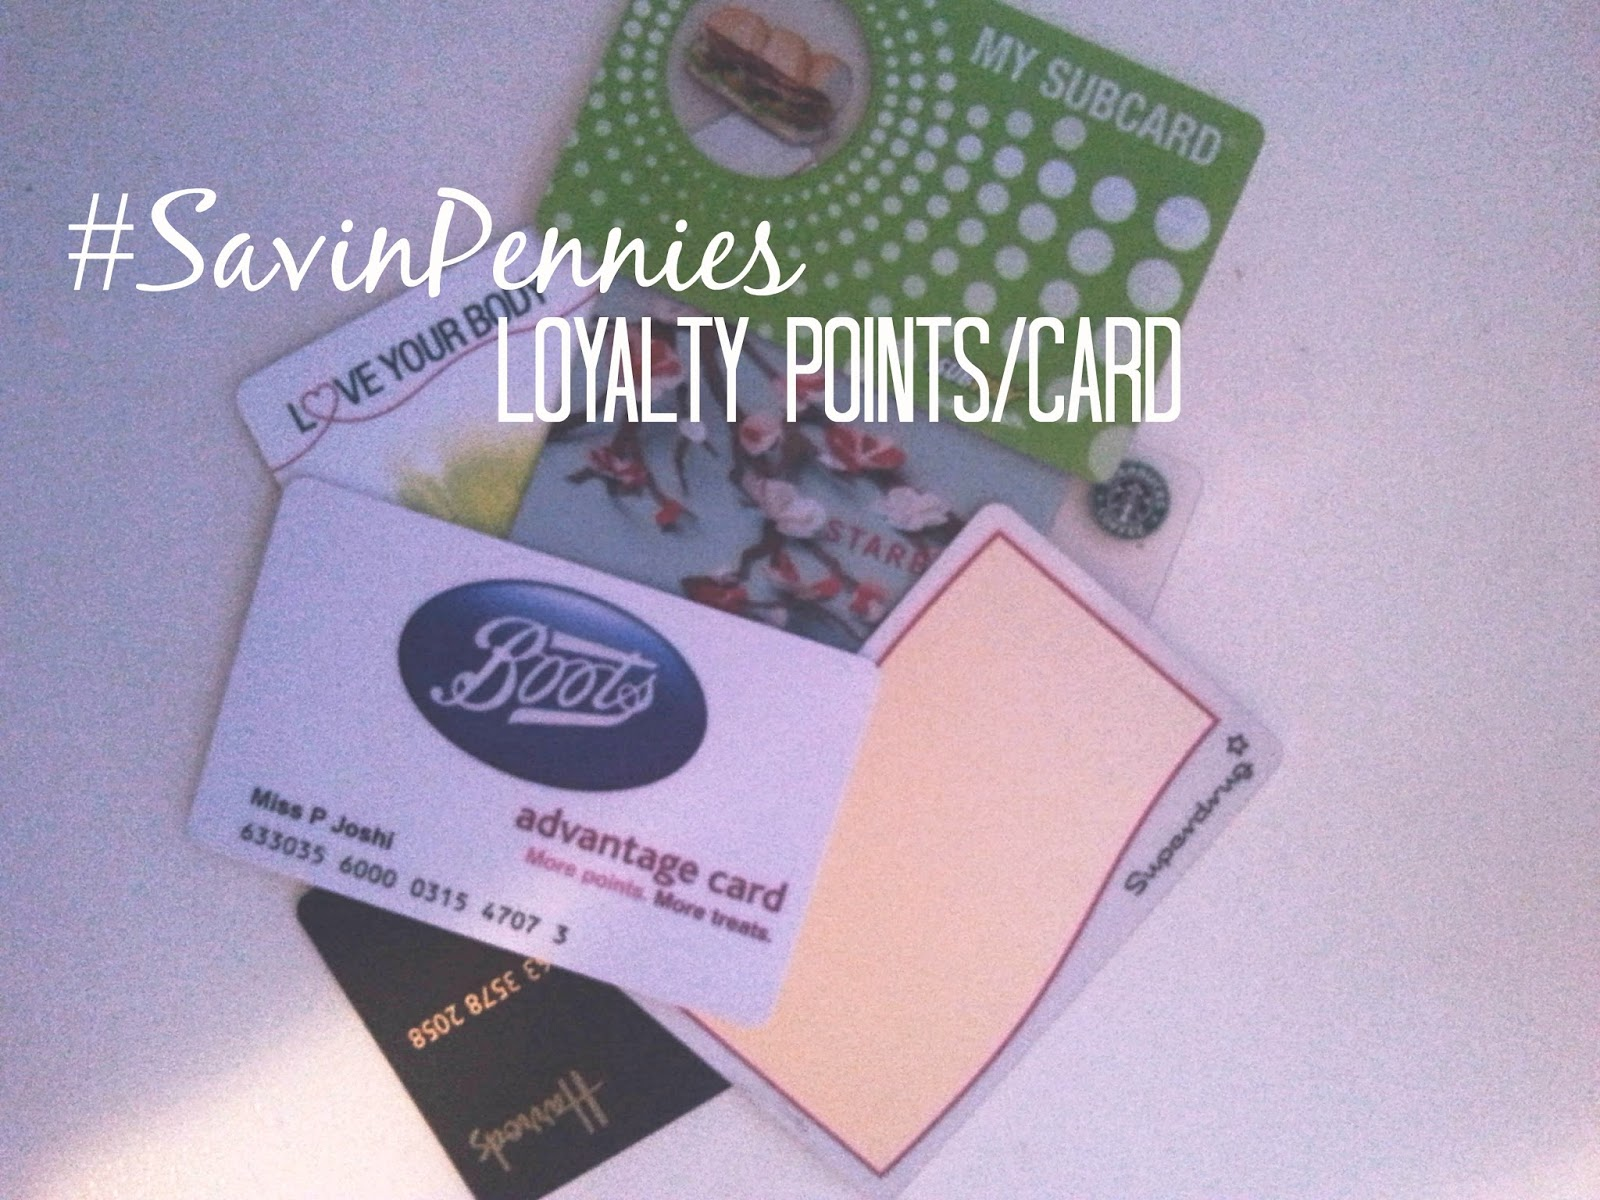 Loyalty/Points Card